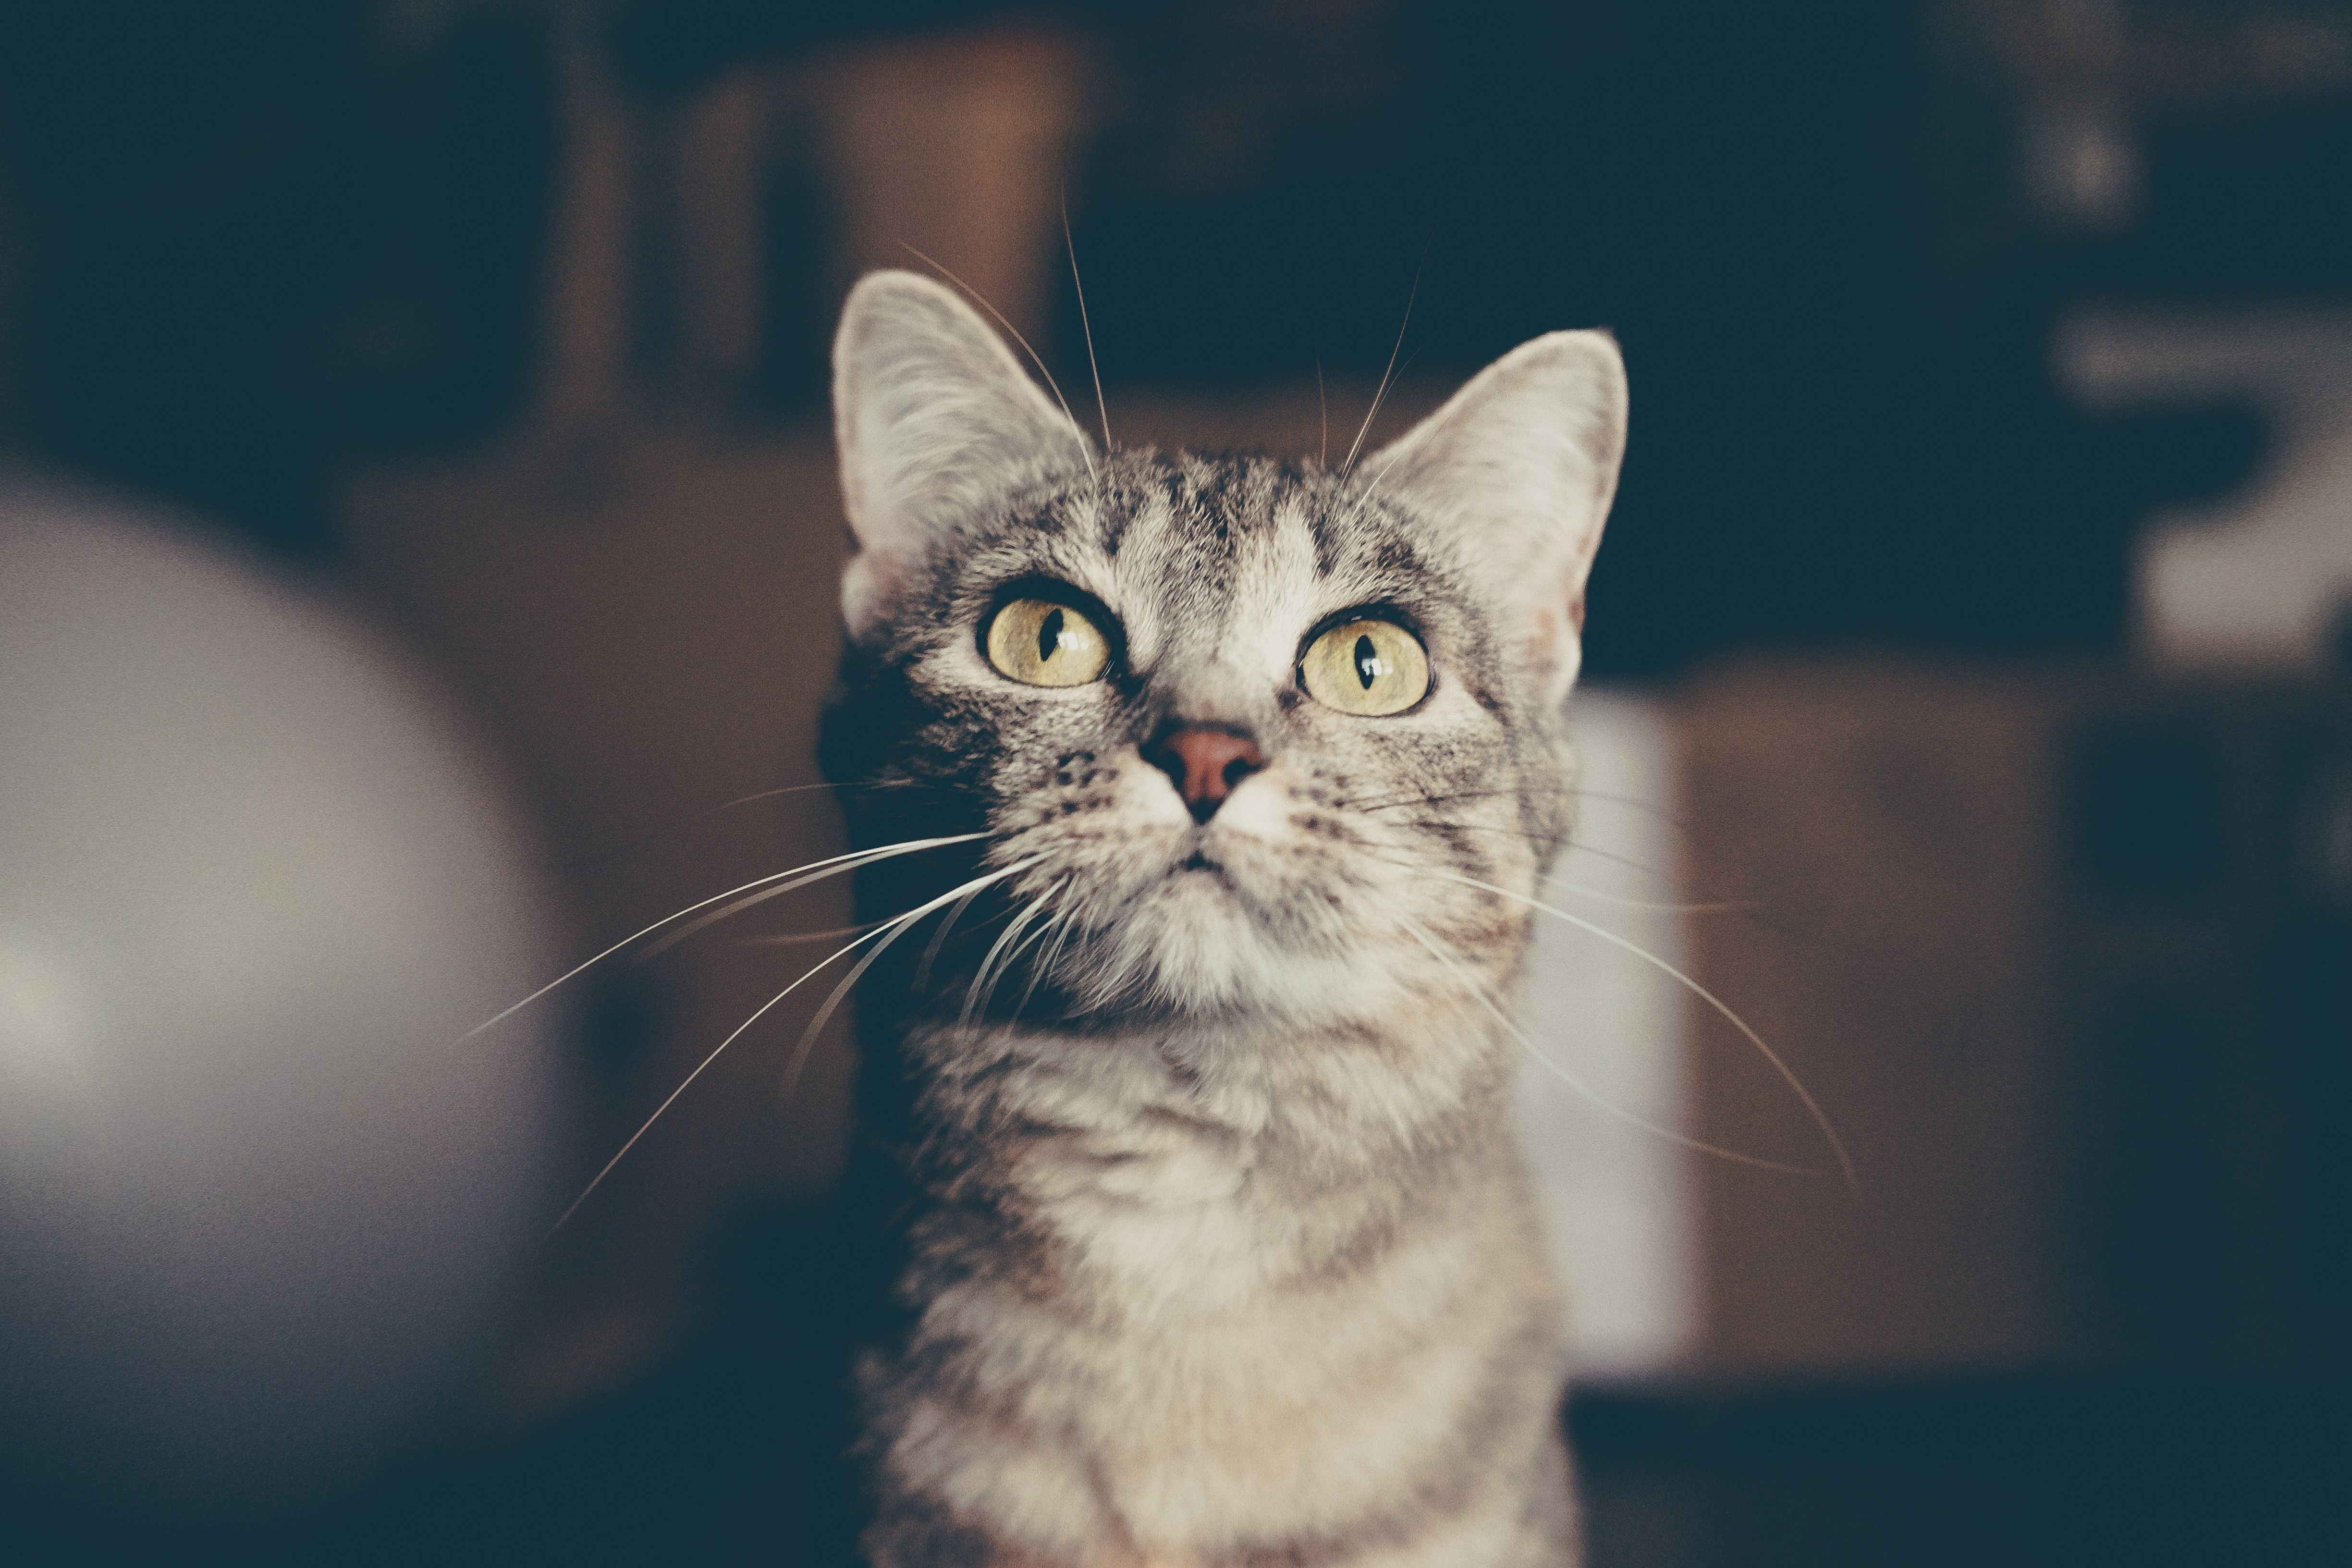 What You Are Eating Looks Delicious I Want To Eat Too Cats Tabby Cat Animals